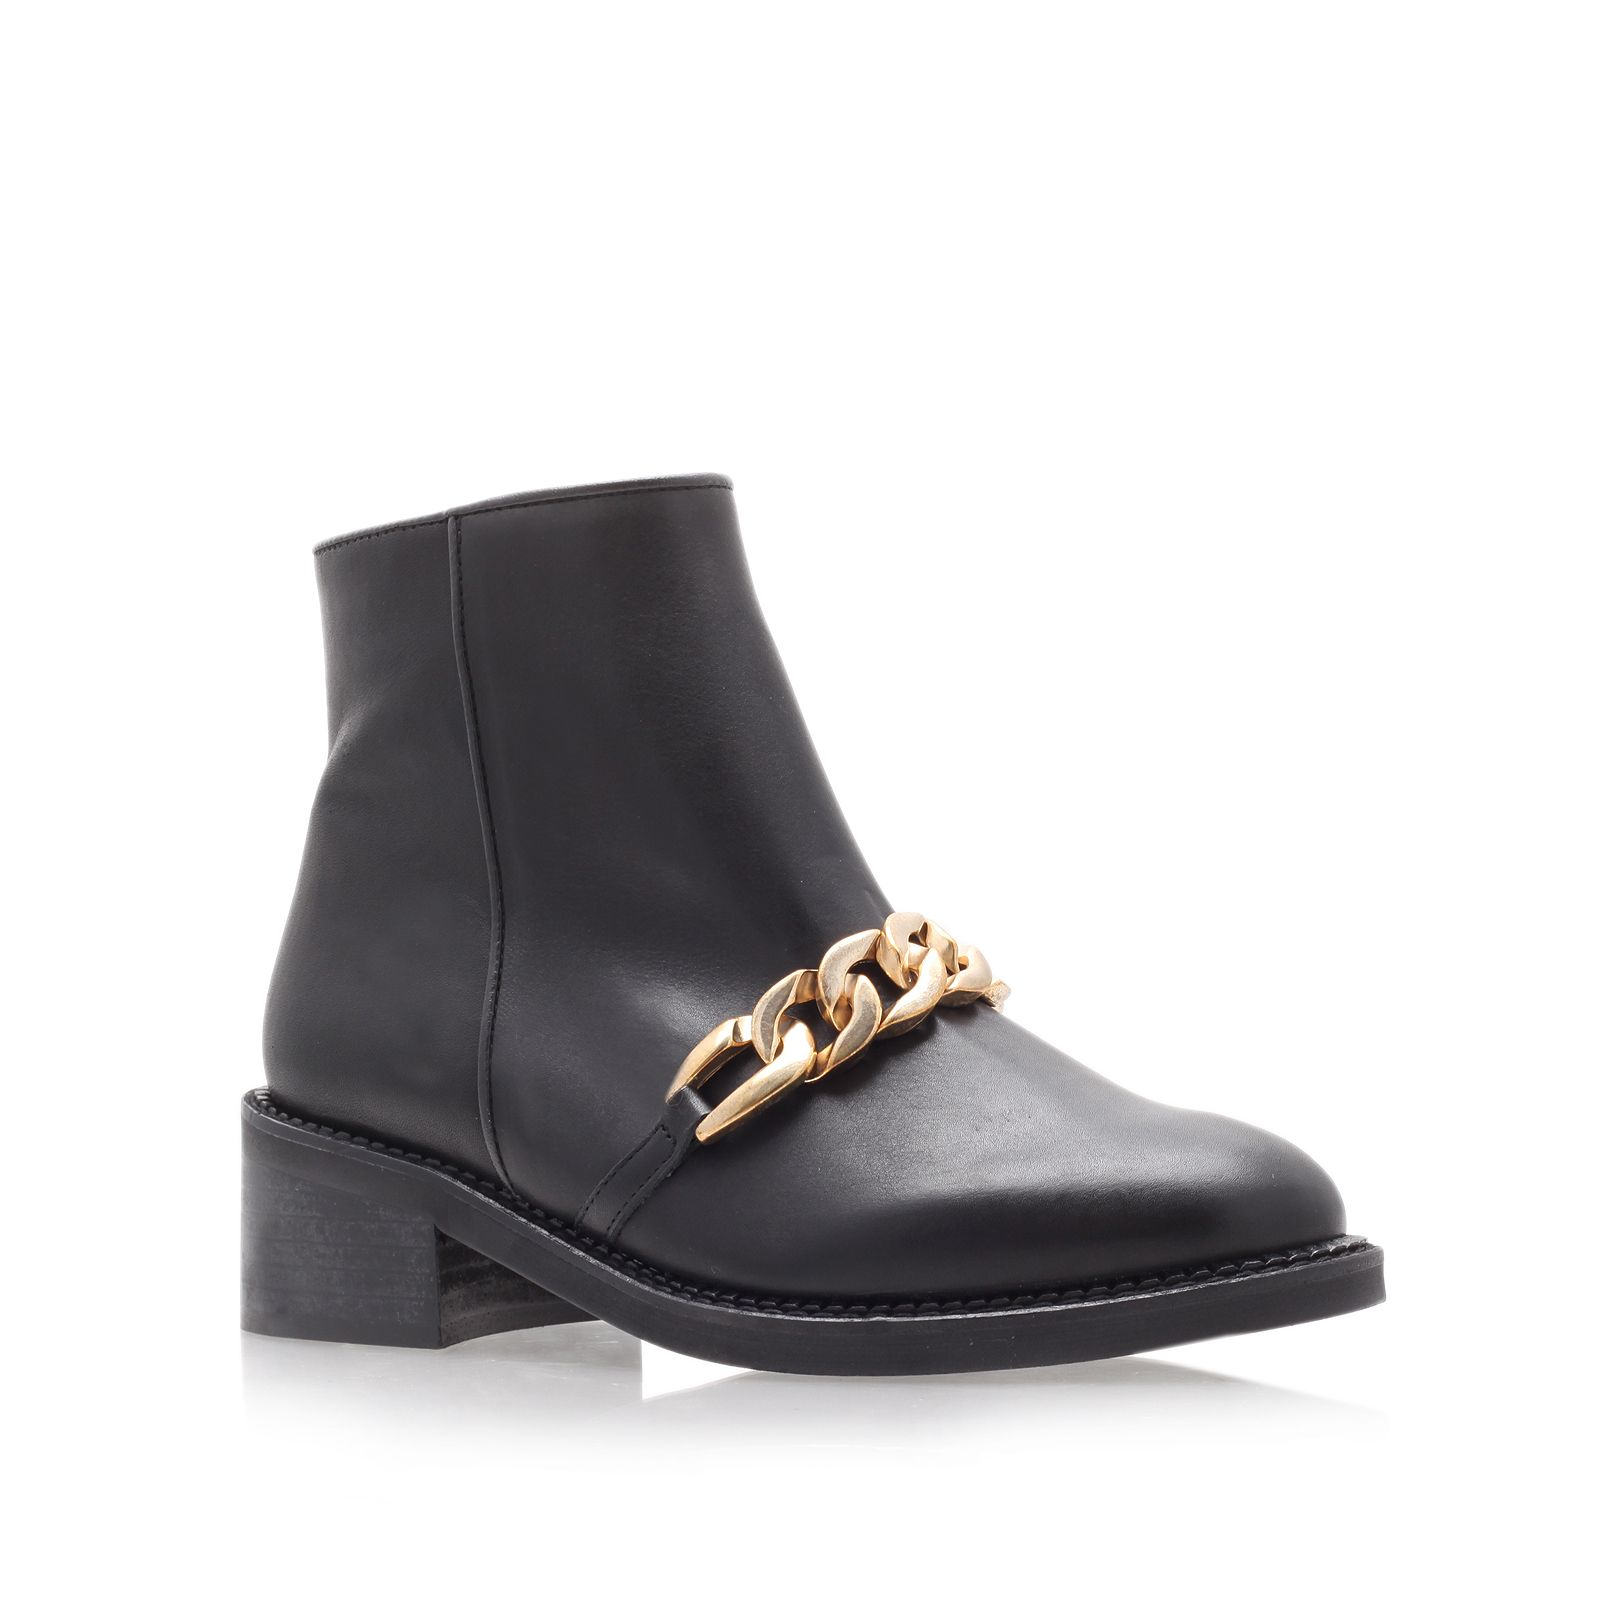 Strike ankle boots